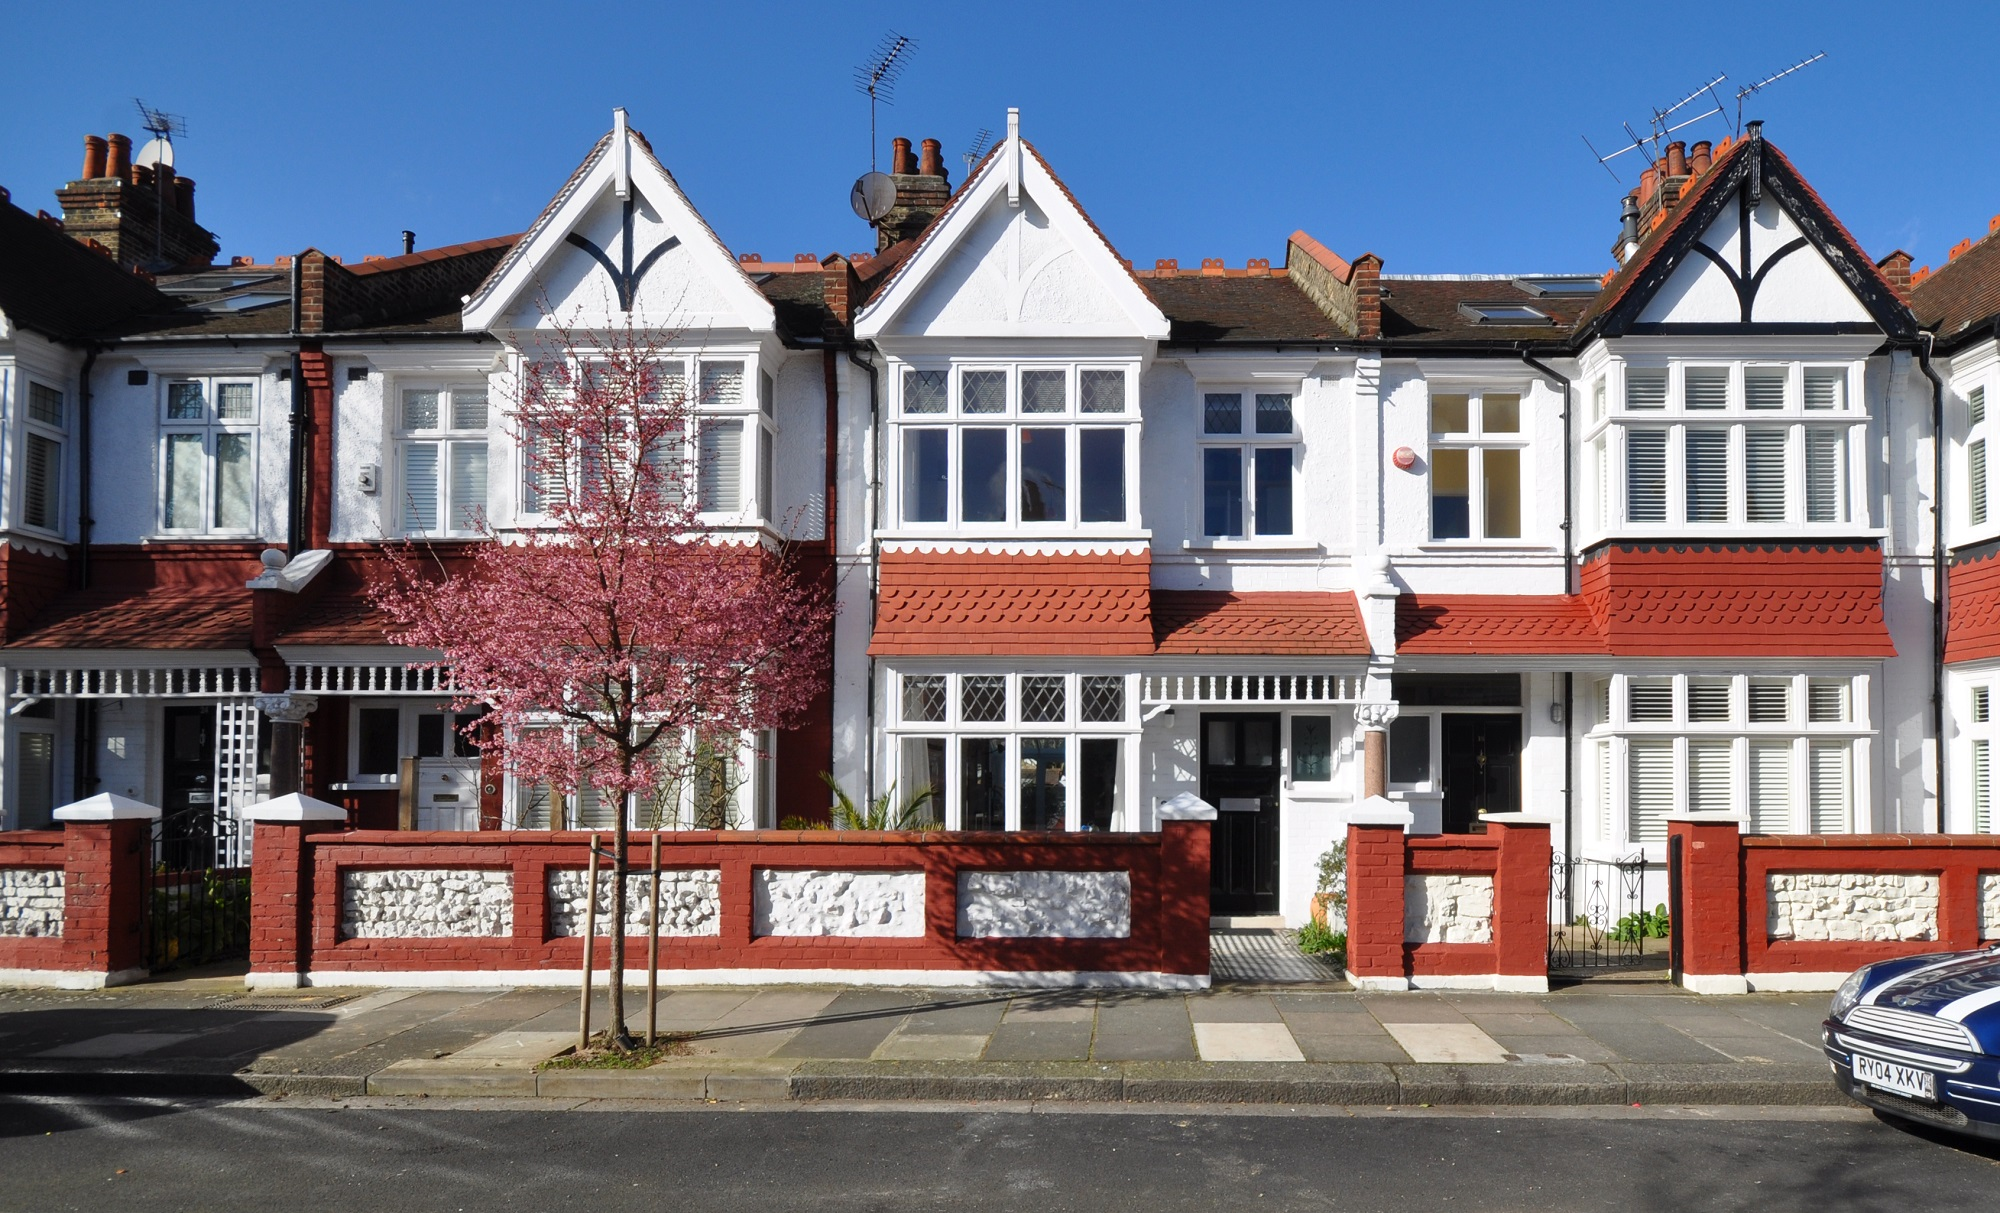 Period property: A guide on what to look for when buying a house